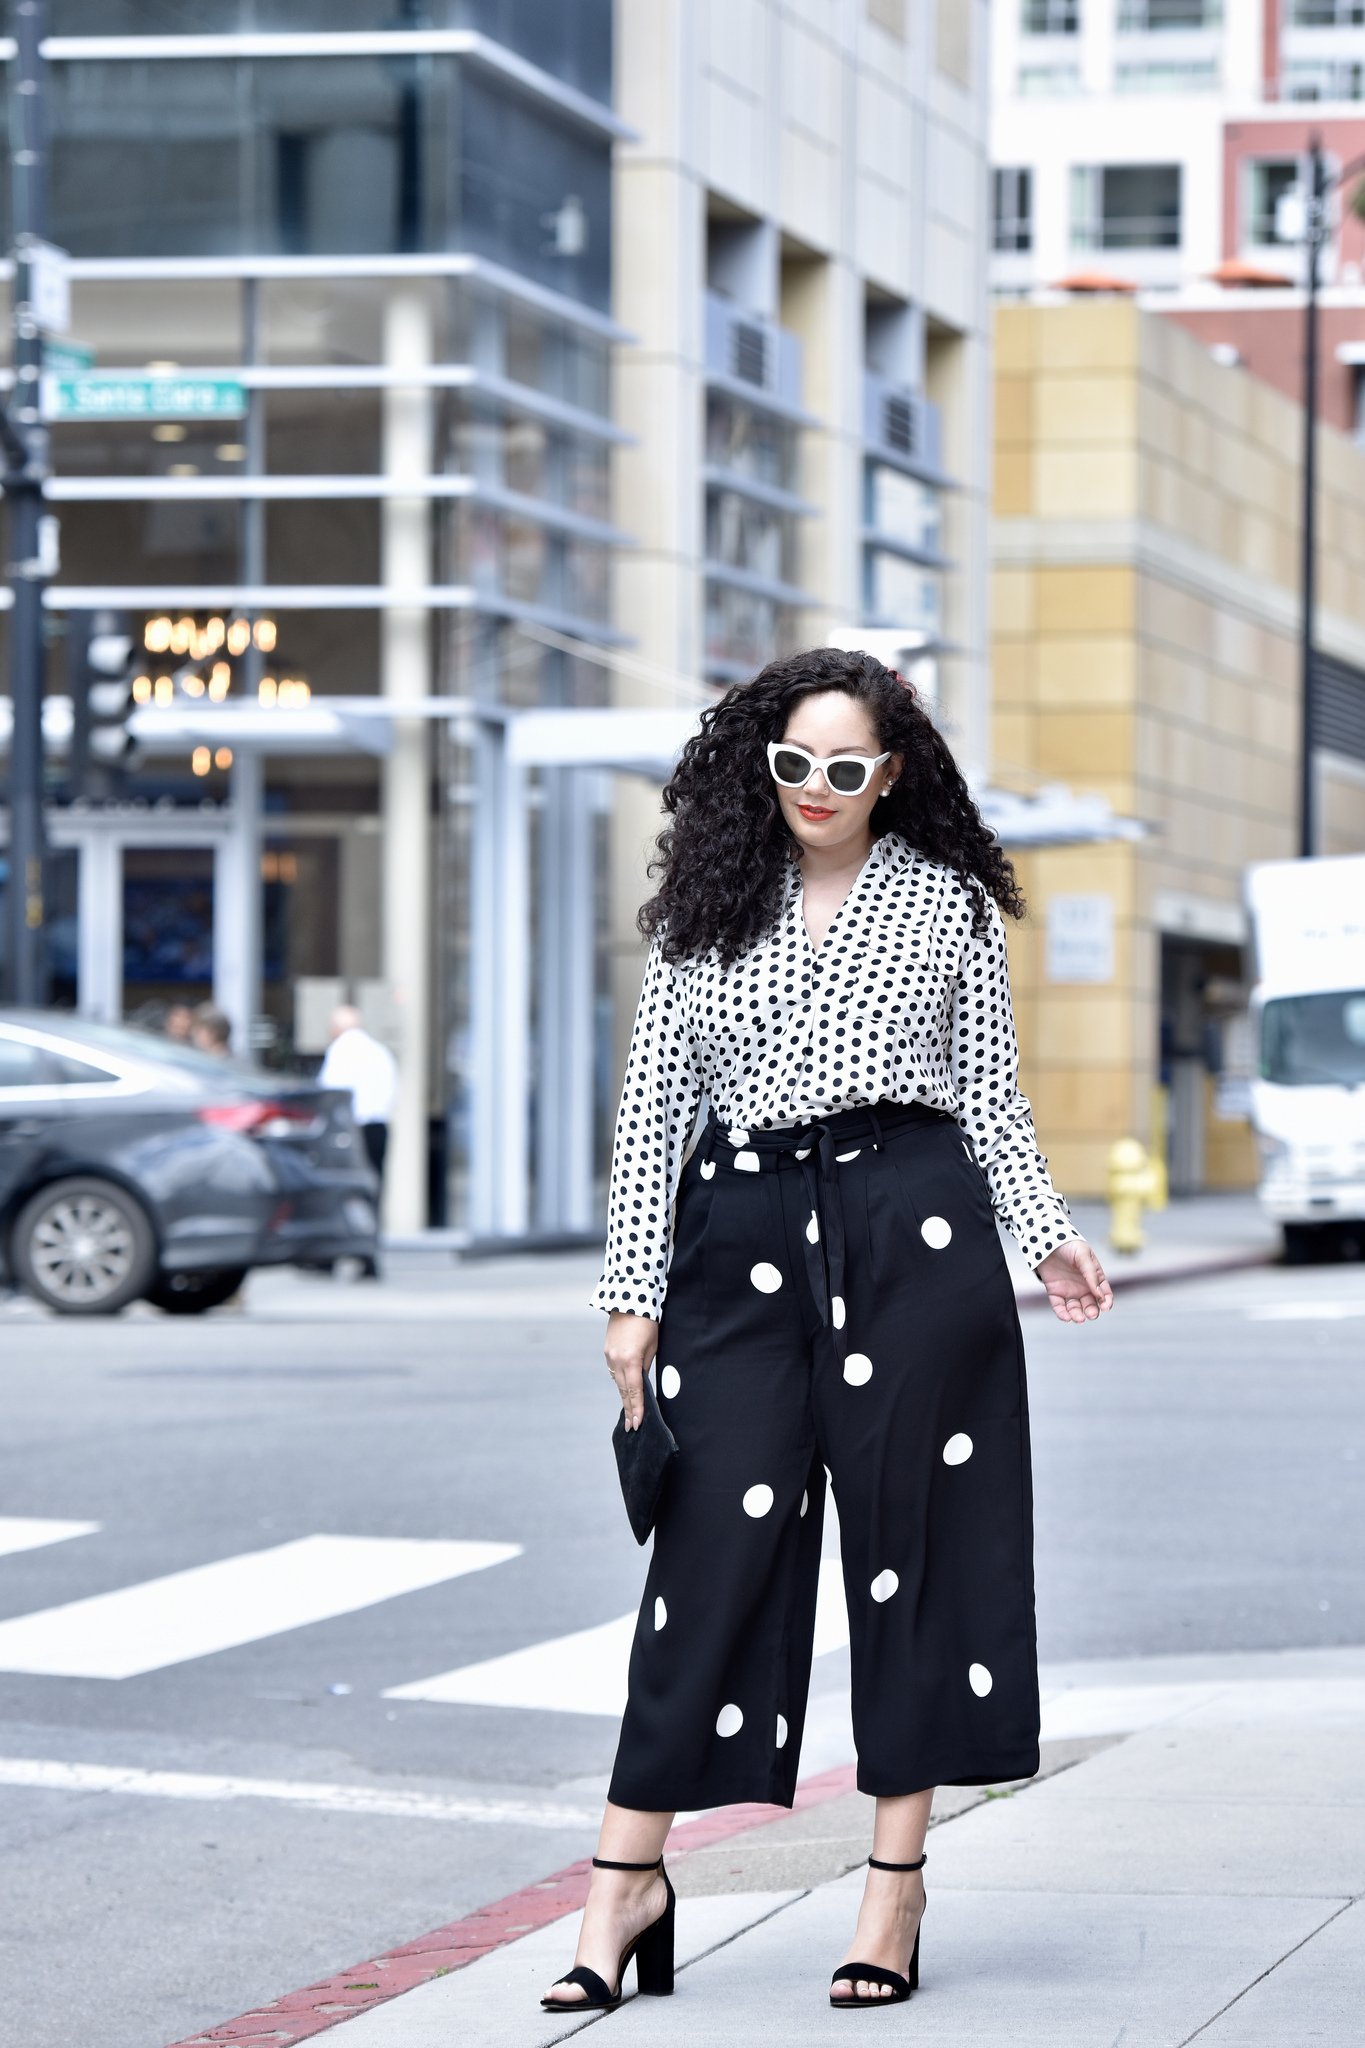 The Polkadot Pieces I'm Loving Right Now Via @GirlWithCurves #outfits #style #fashion #plussize #anntaylor